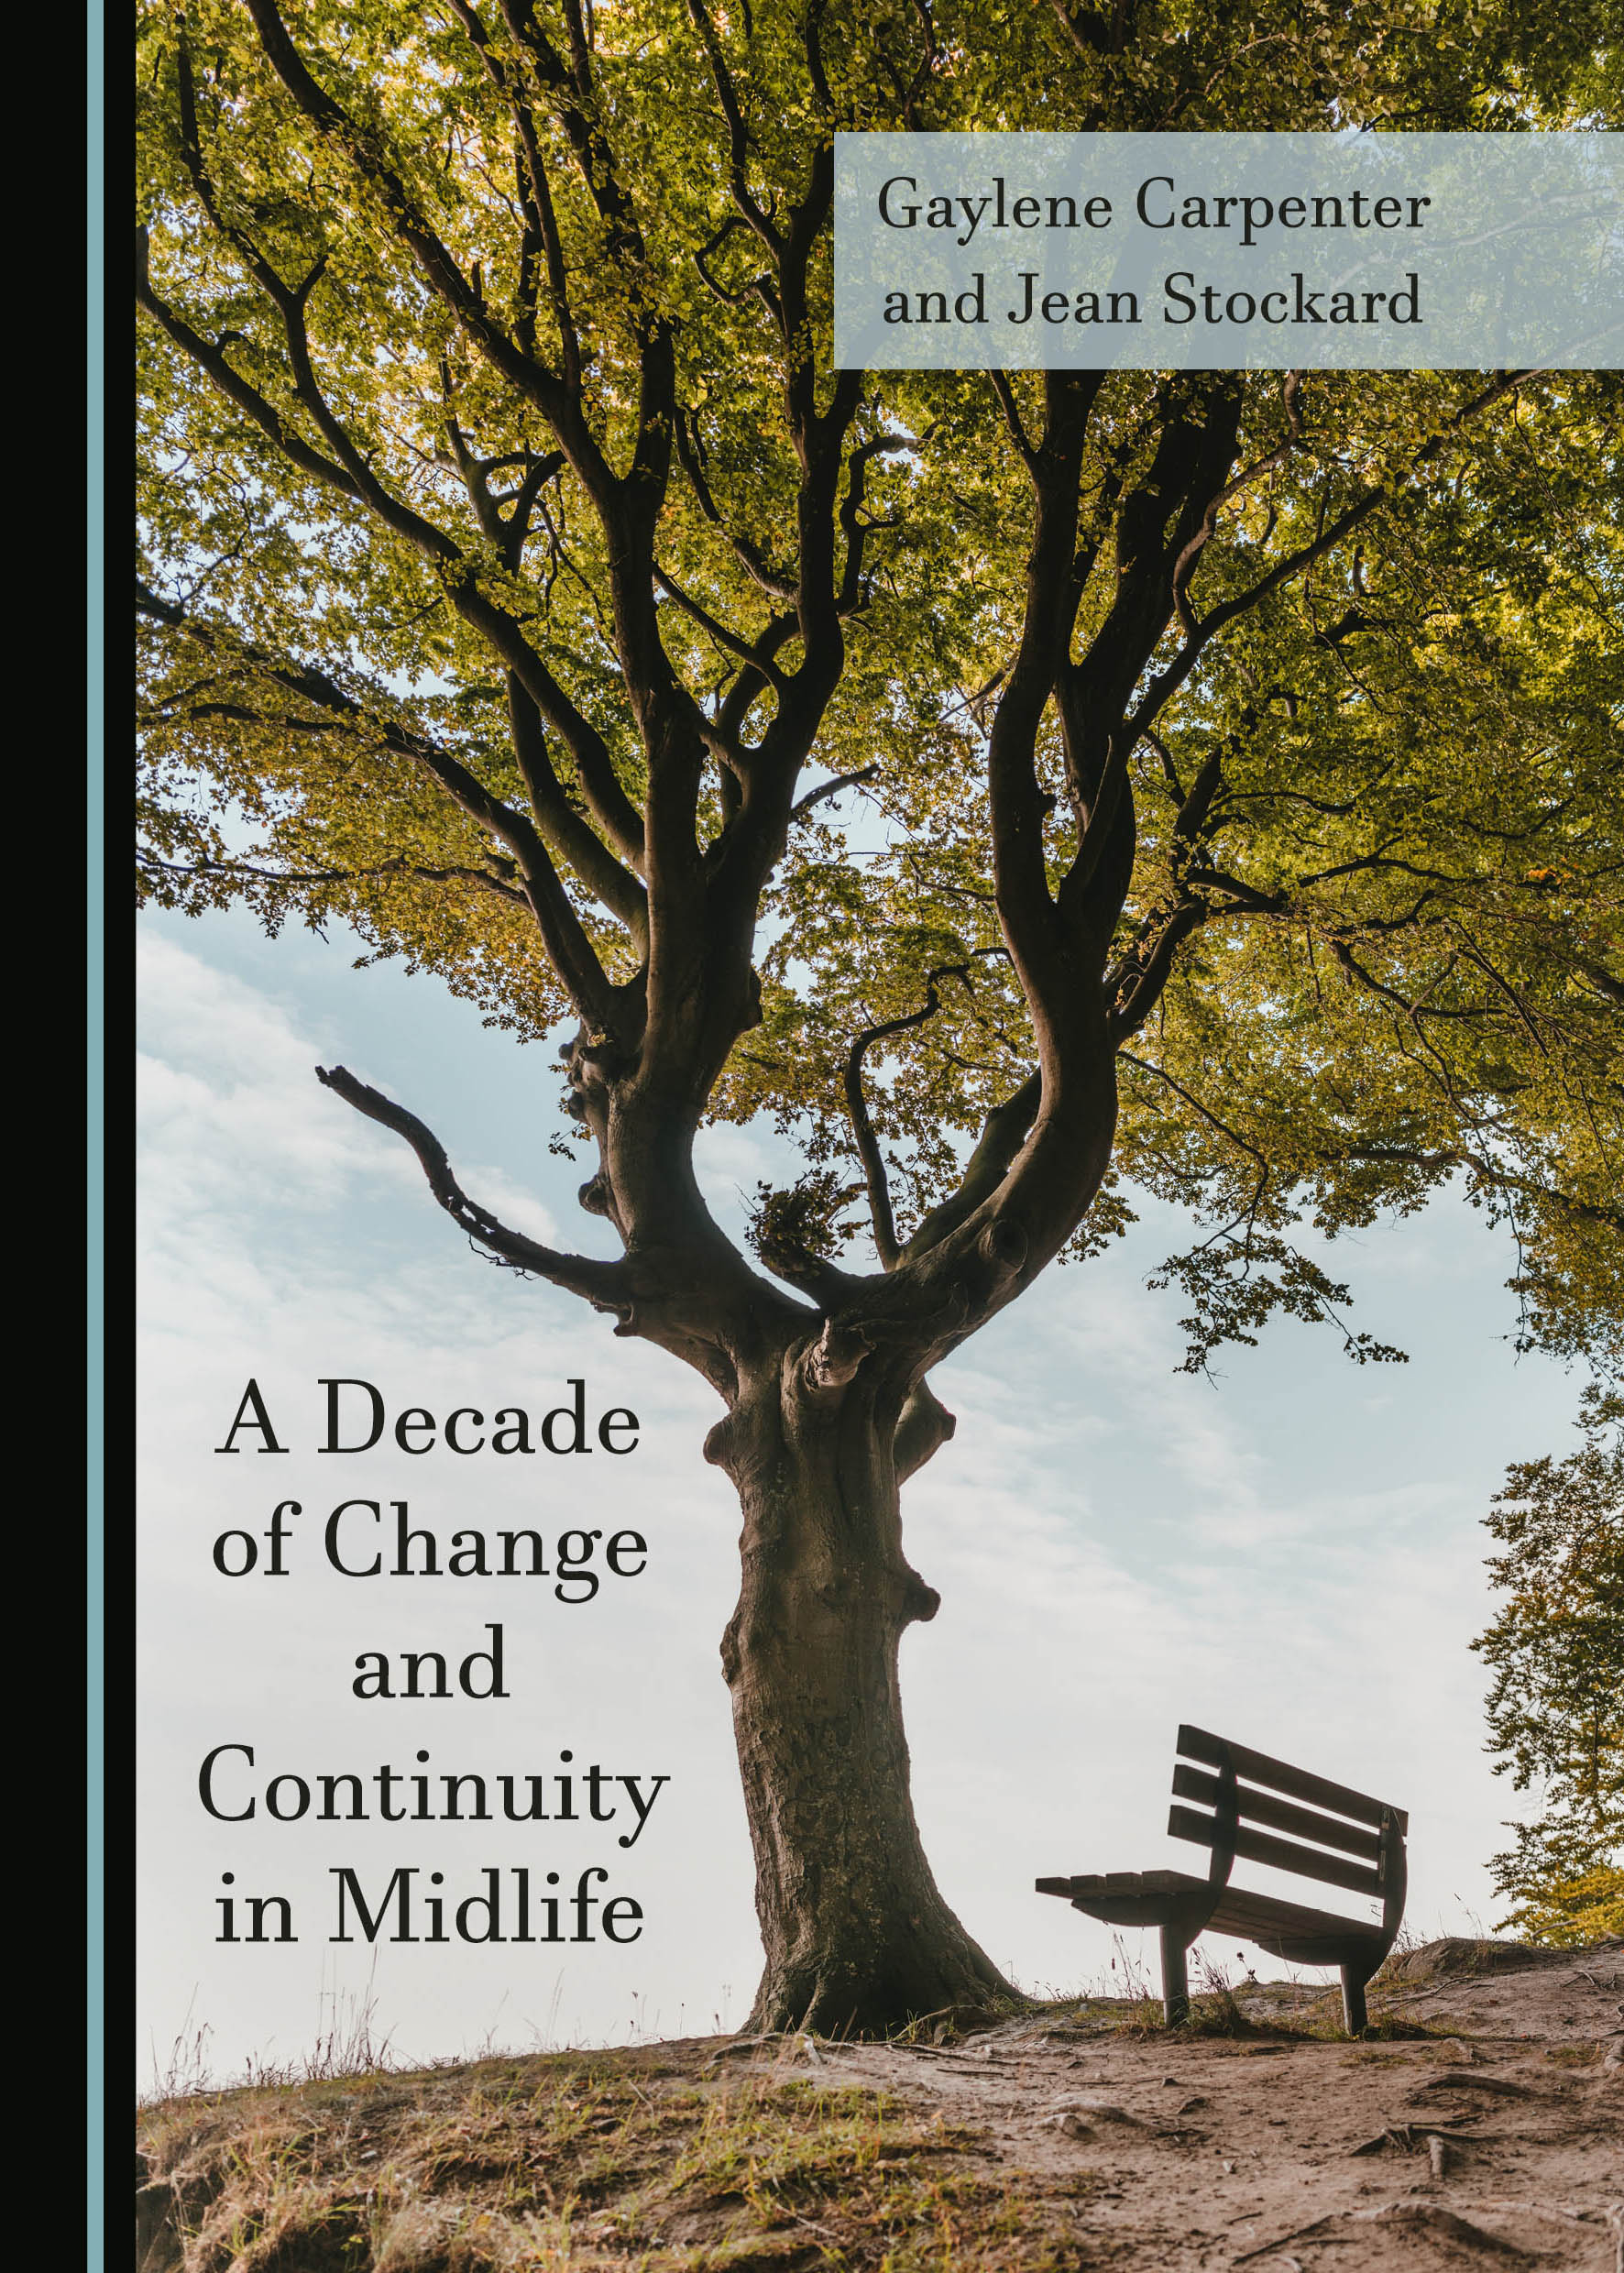 A Decade of Change and Continuity in Midlife